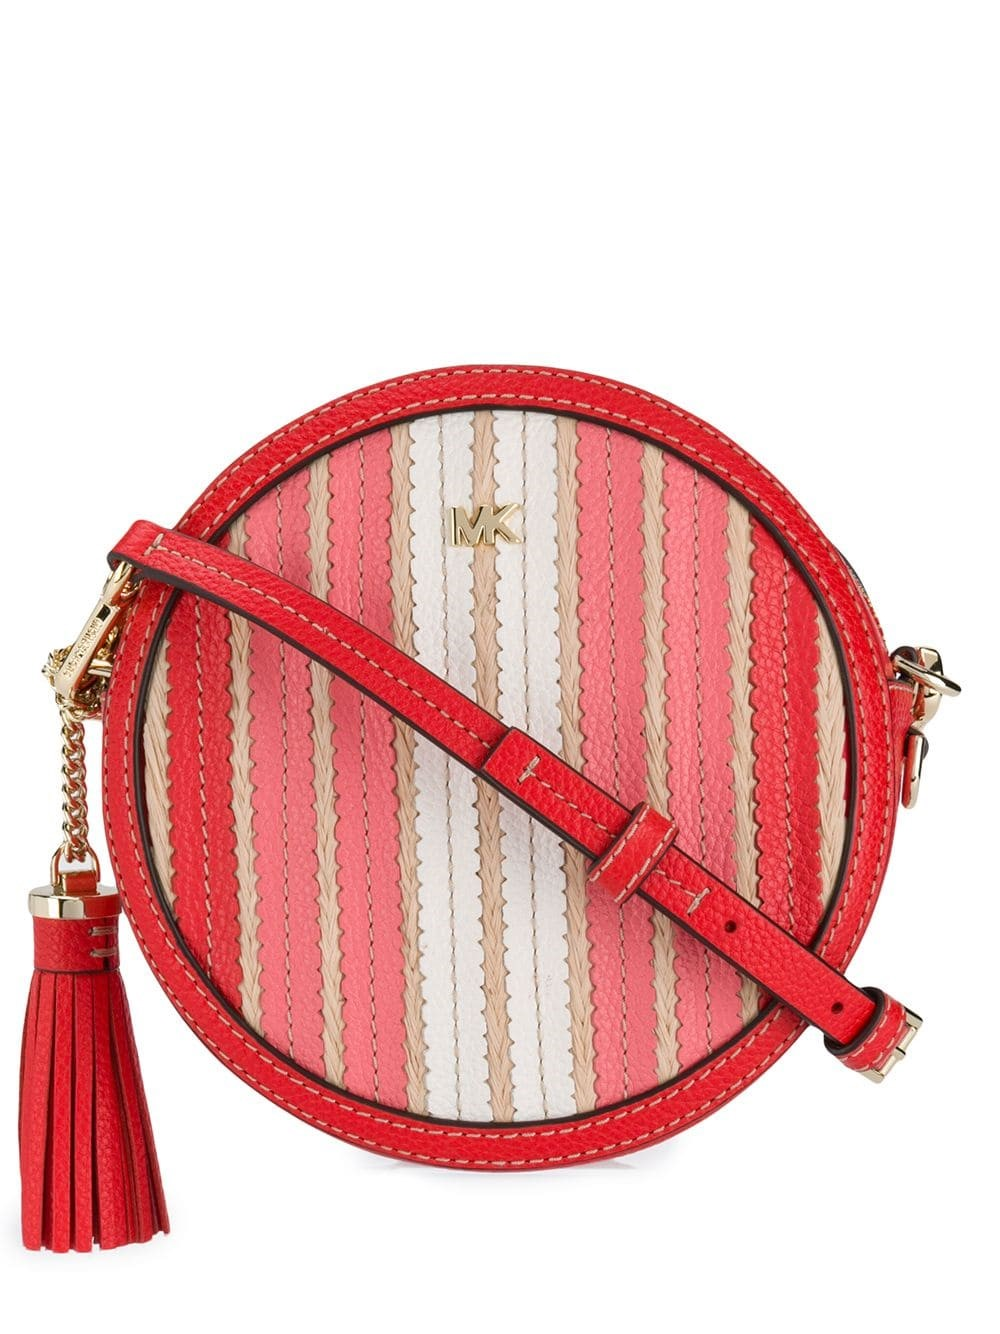 633528e21c6d michael kors mk STRIPED CROSS BODY BAG available on montiboutique ...